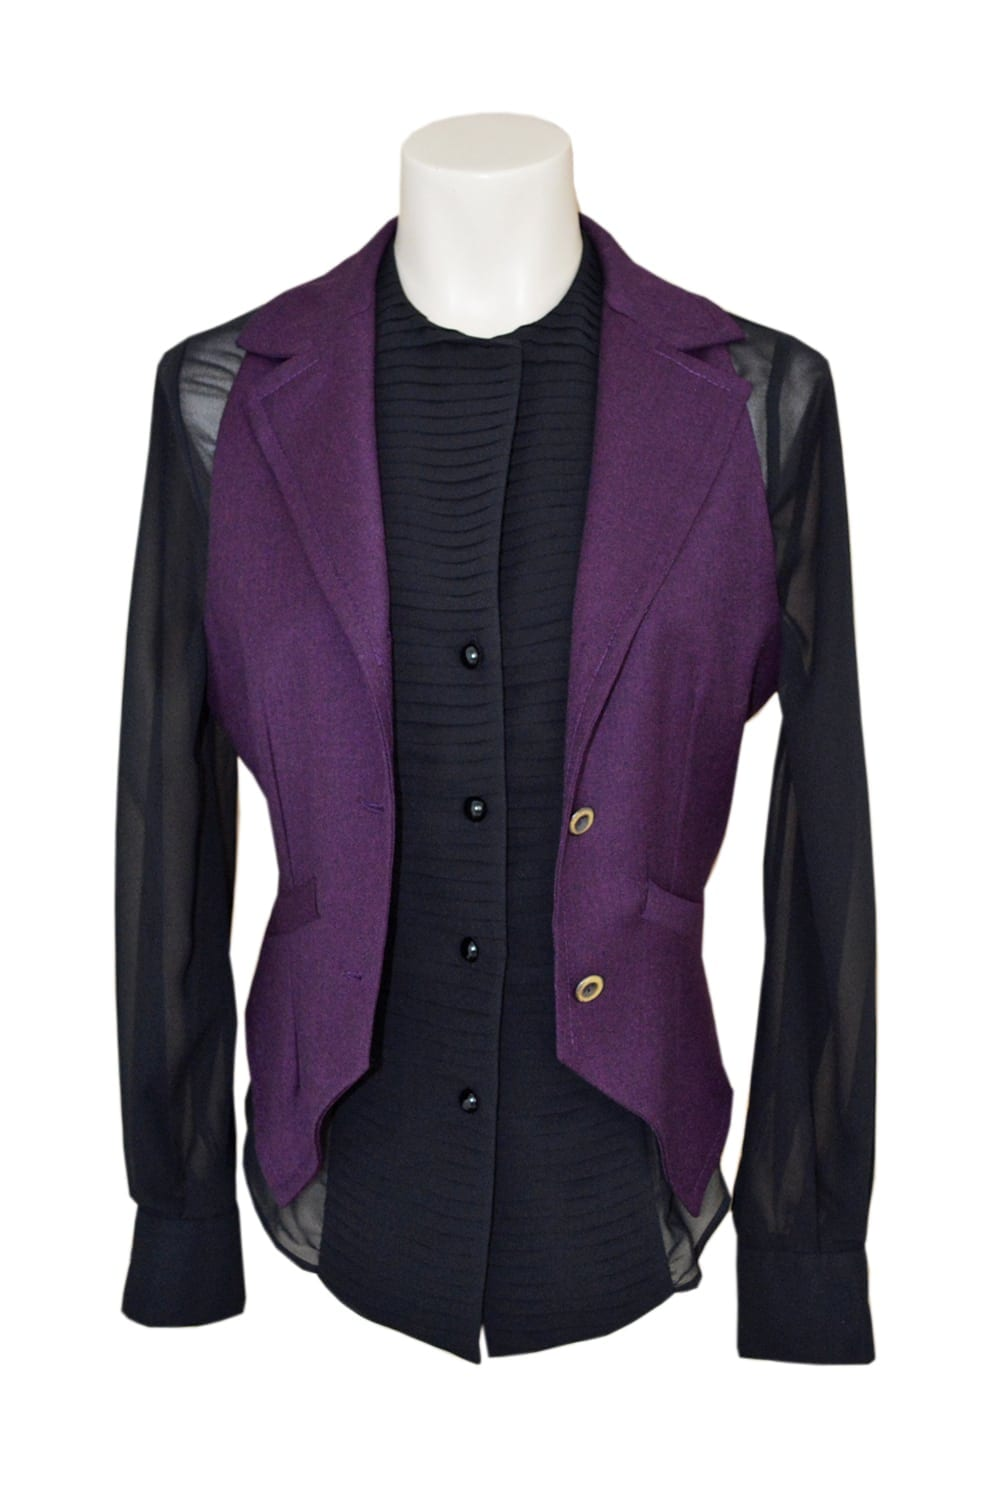 Purple vest without sleeves. Tailored cut with two buttons and side seam pockets. Black lace back.